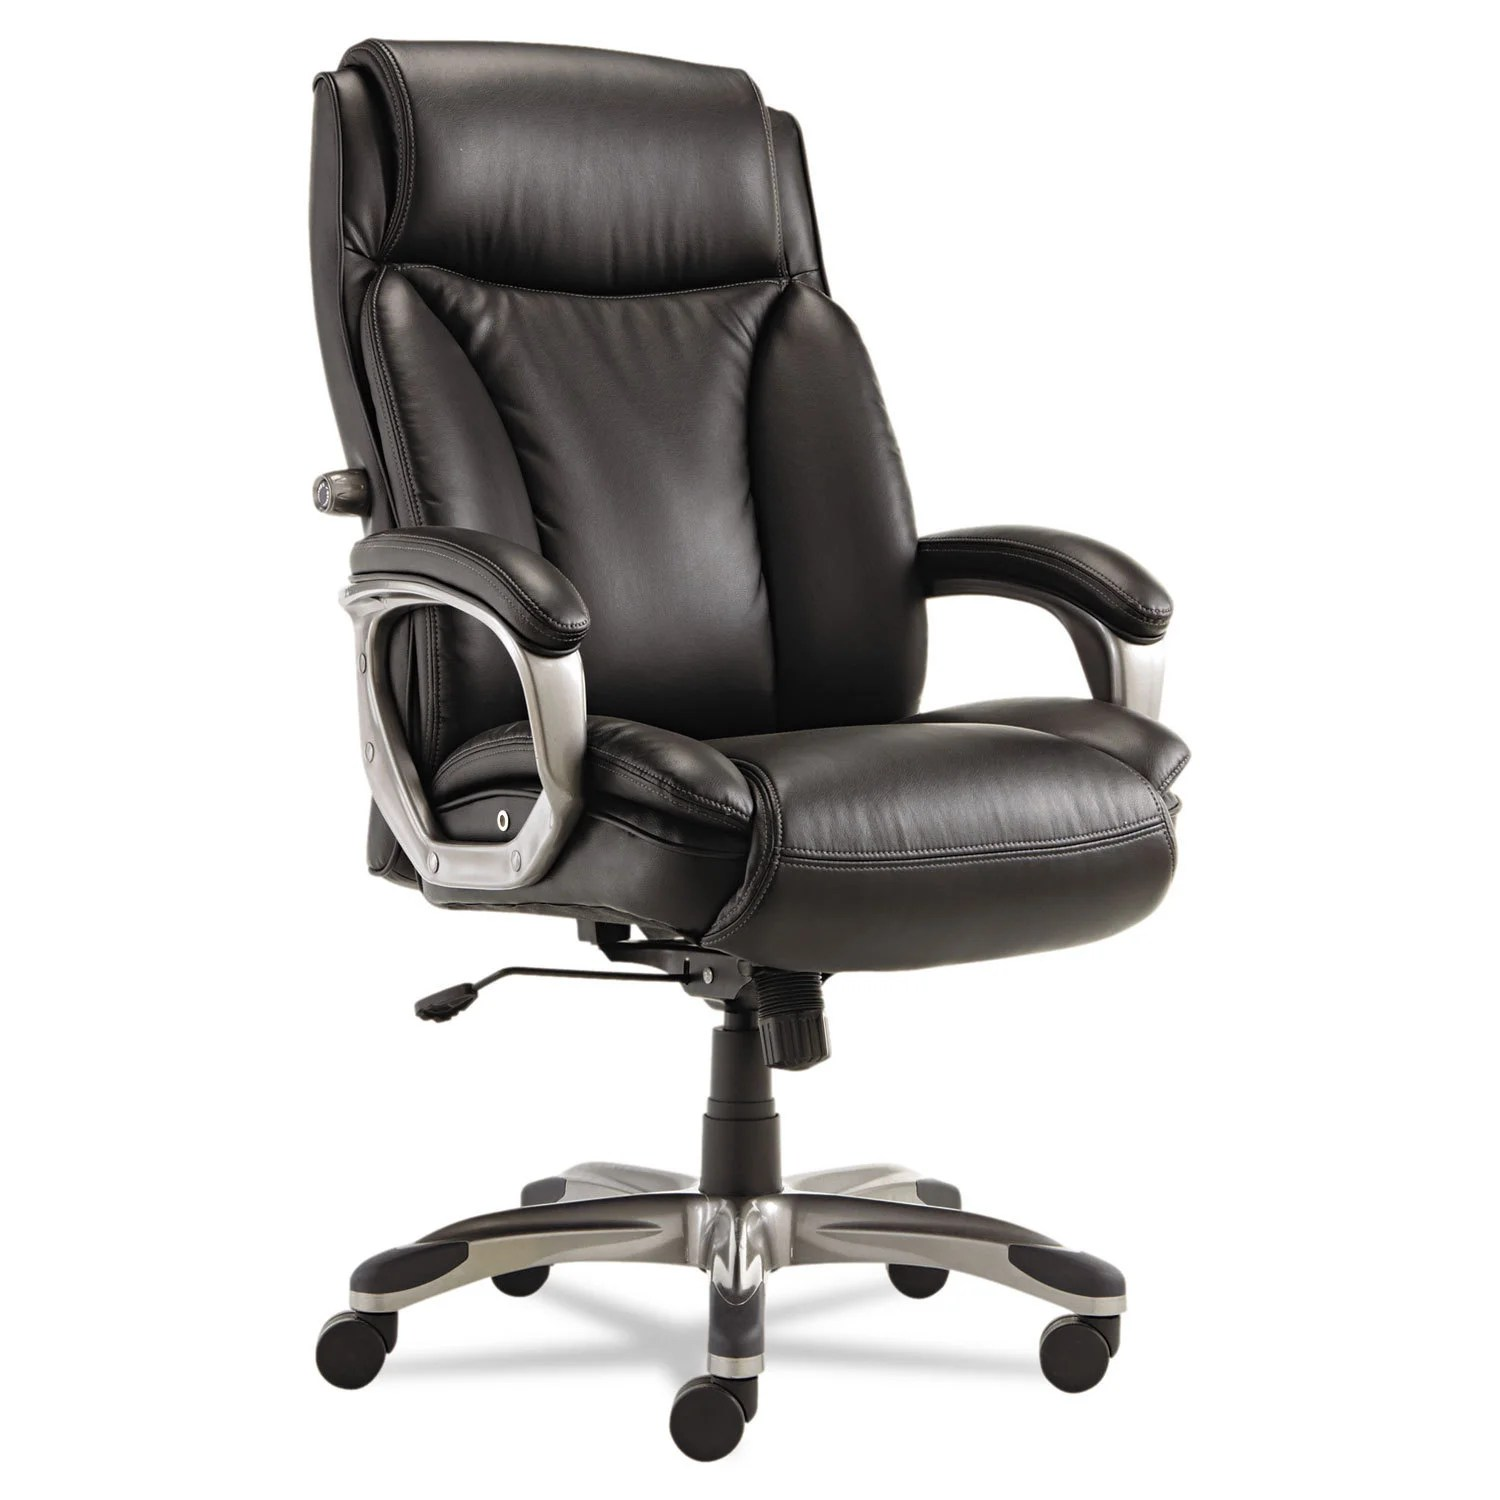 Executive Leather Chair Details About Alera Veon Series Black Executive High Back Leather Chair W Coil Spring